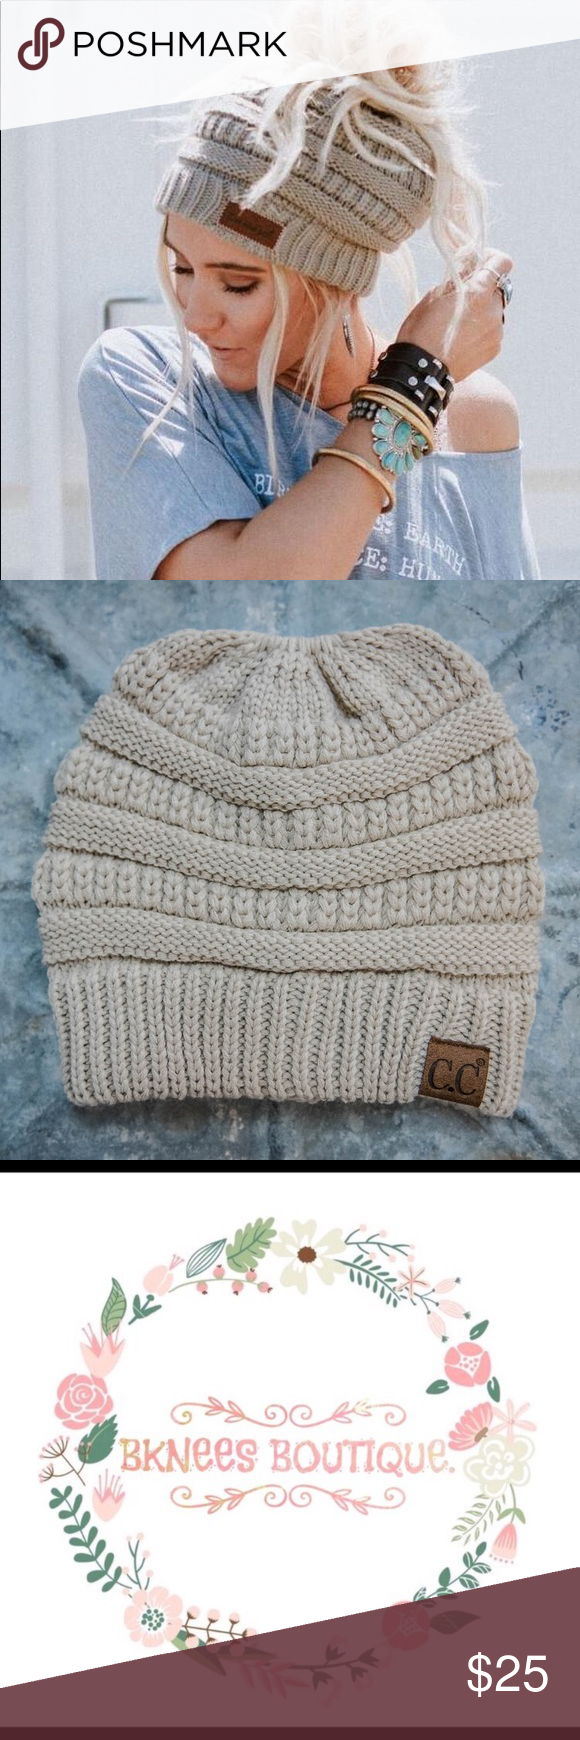 3236bb5e65a0f 🦋RESTOCKED COLOR! 🦋 C.C. MESSY BUN BEANIES! THIS LISTING IS FOR SHADE  BEIGE